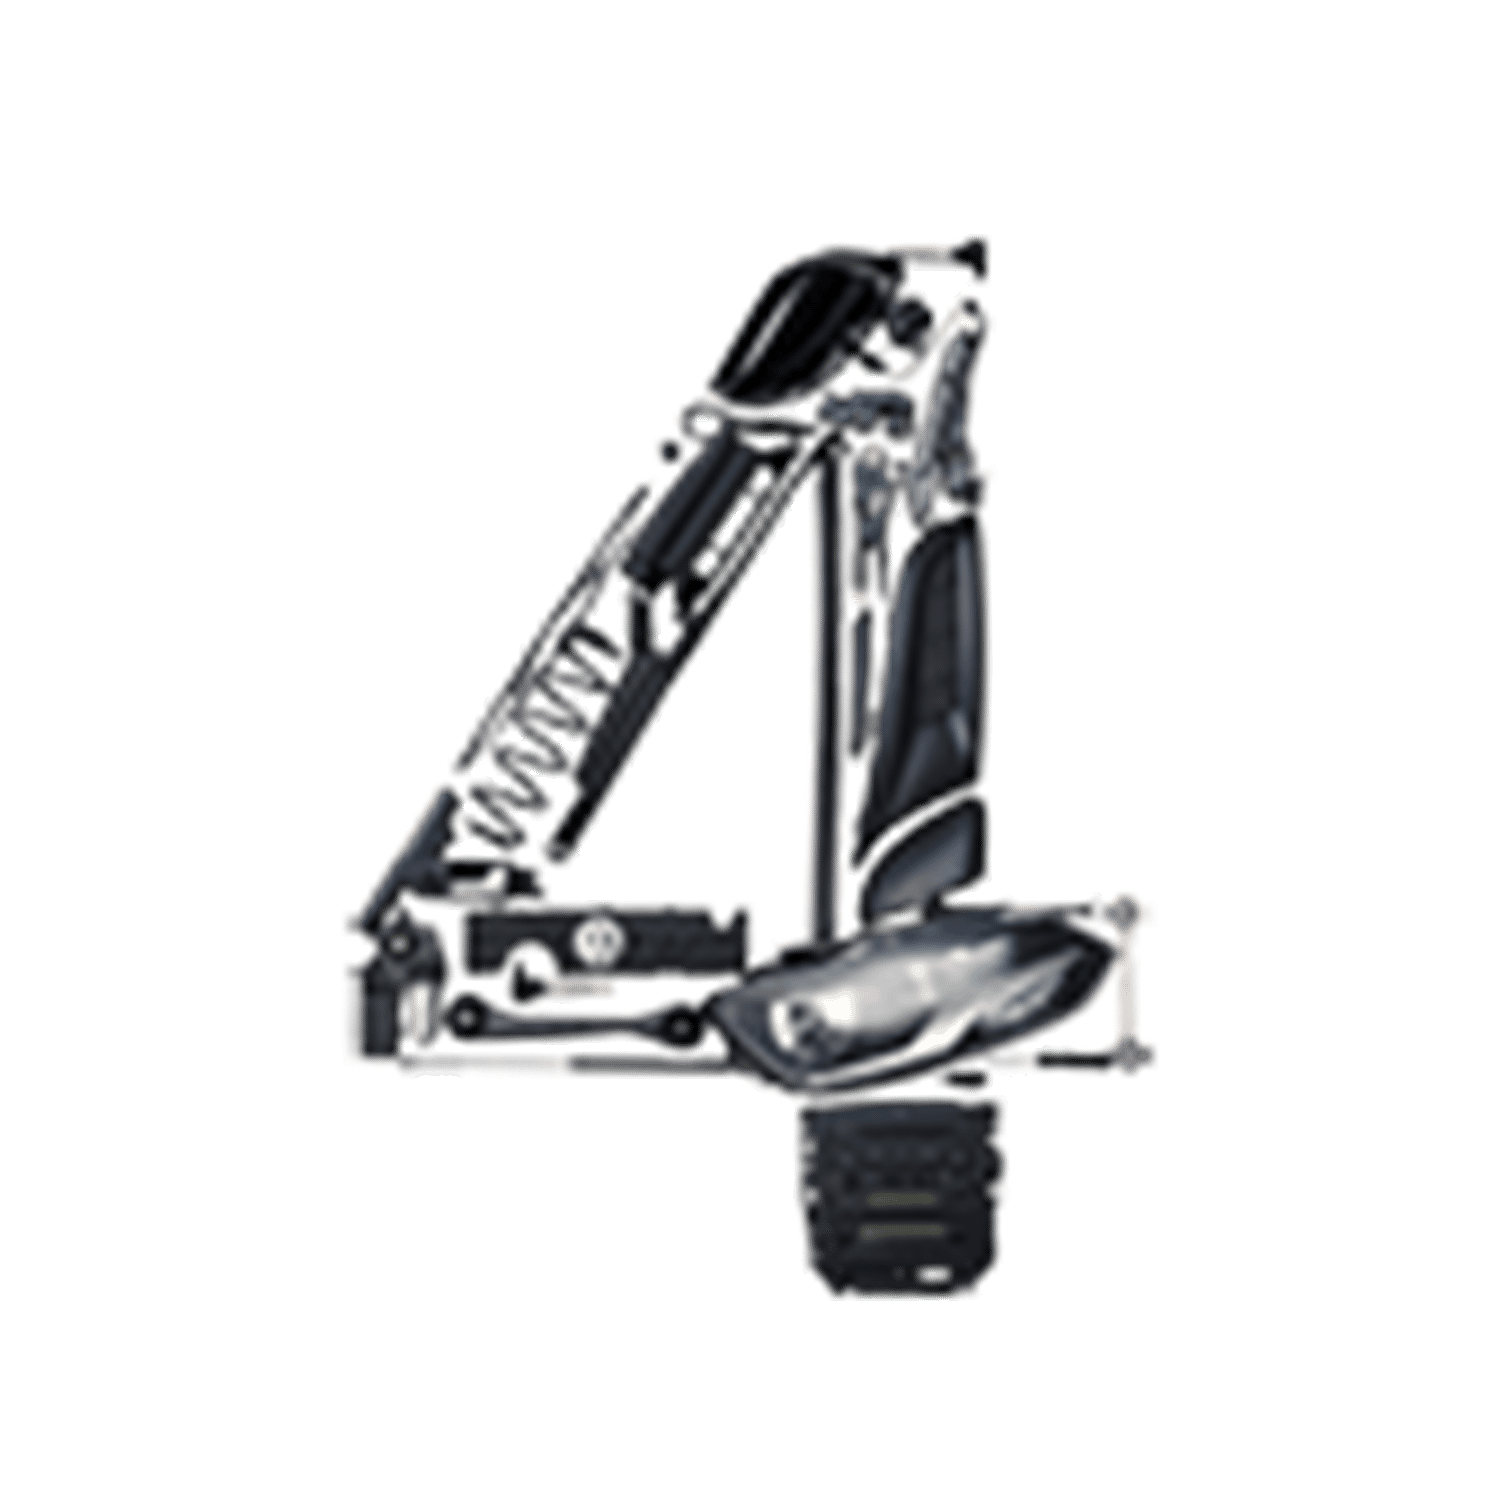 Number 4 made from car parts